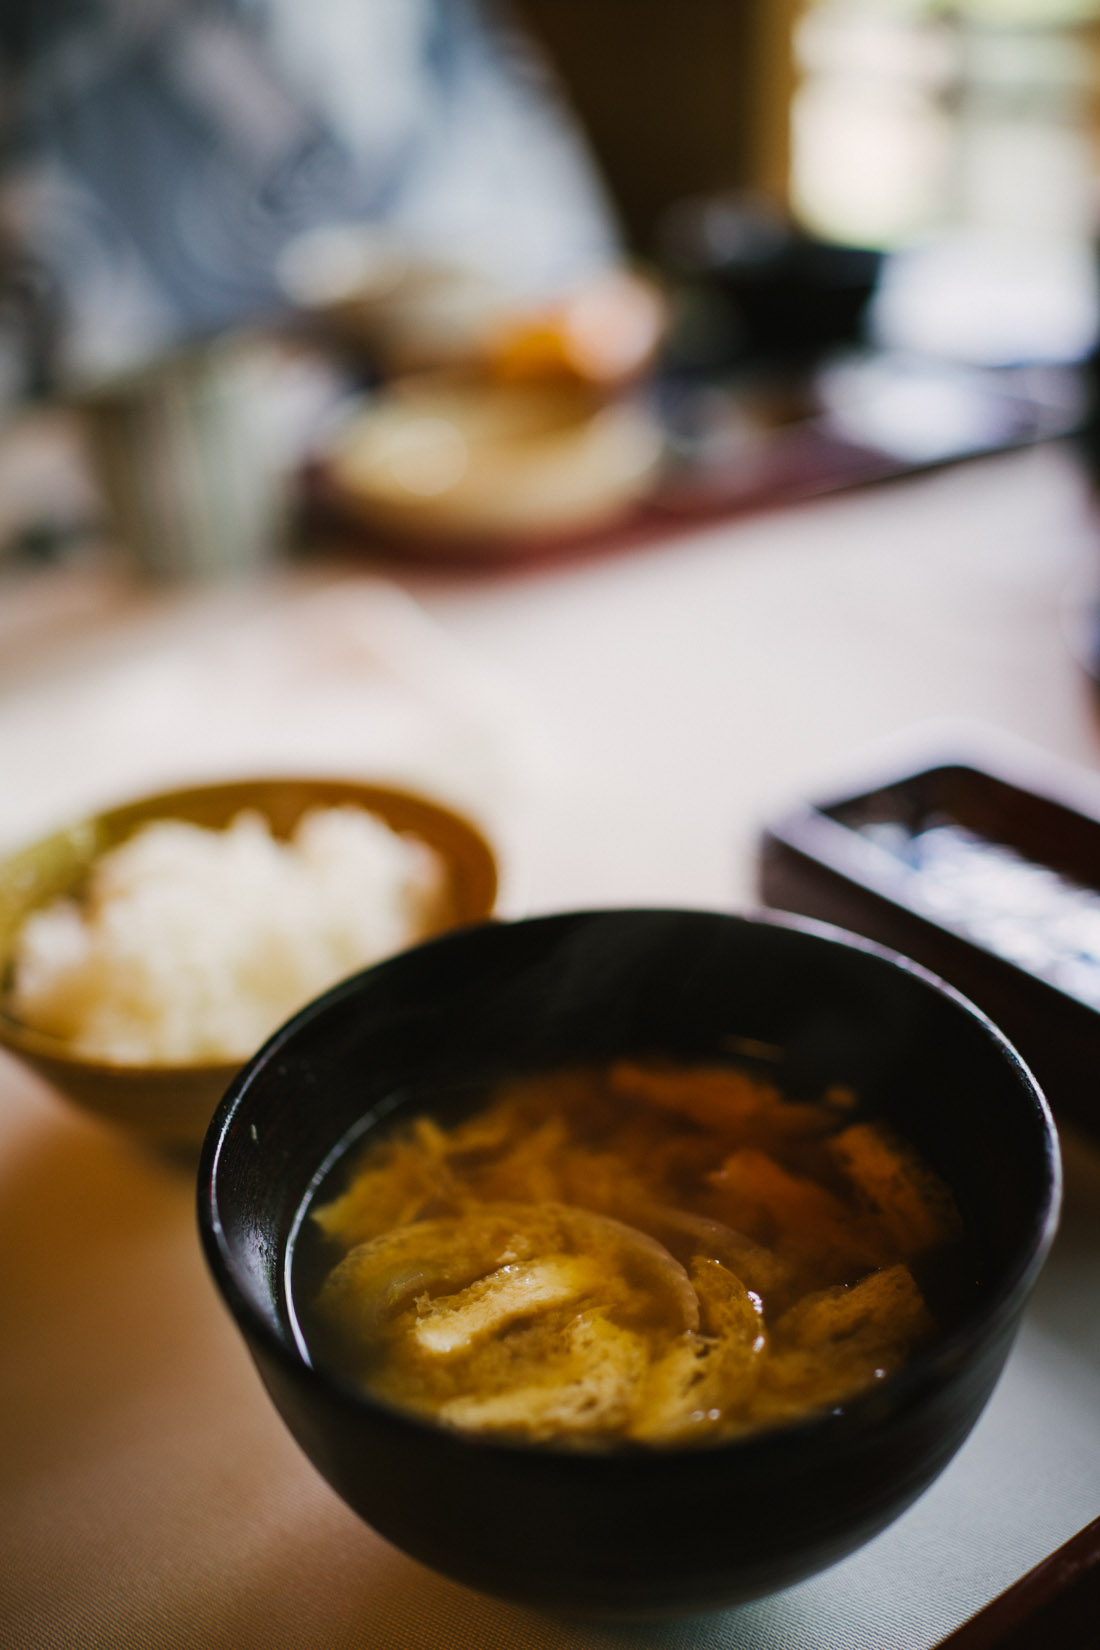 Miso soup with onions.